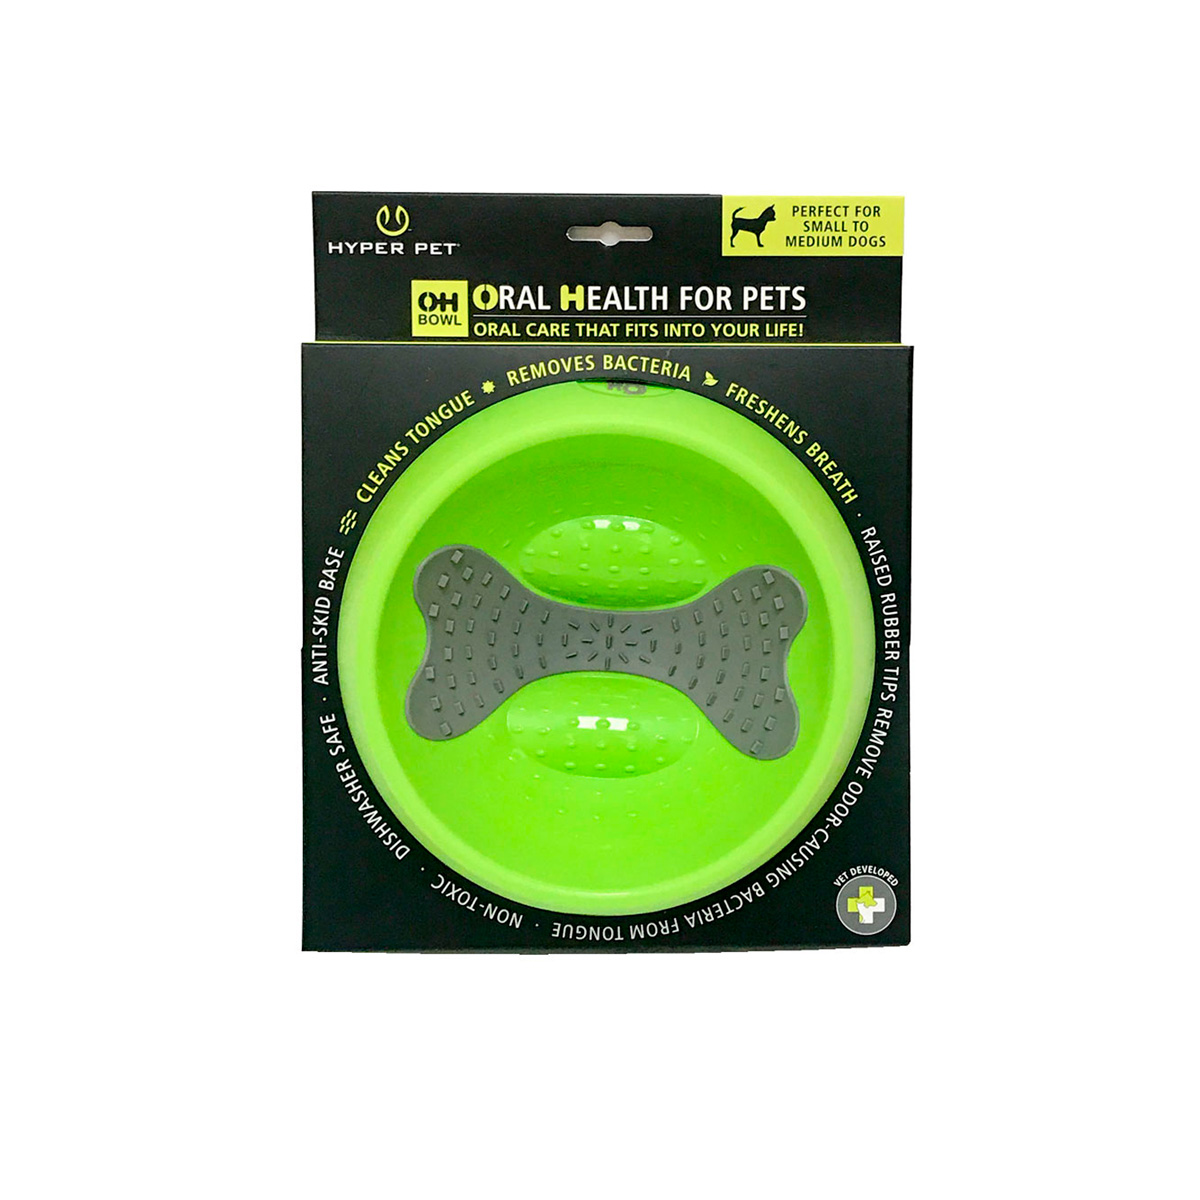 oh-oral-health-dog-bowl-medium-large-green-2